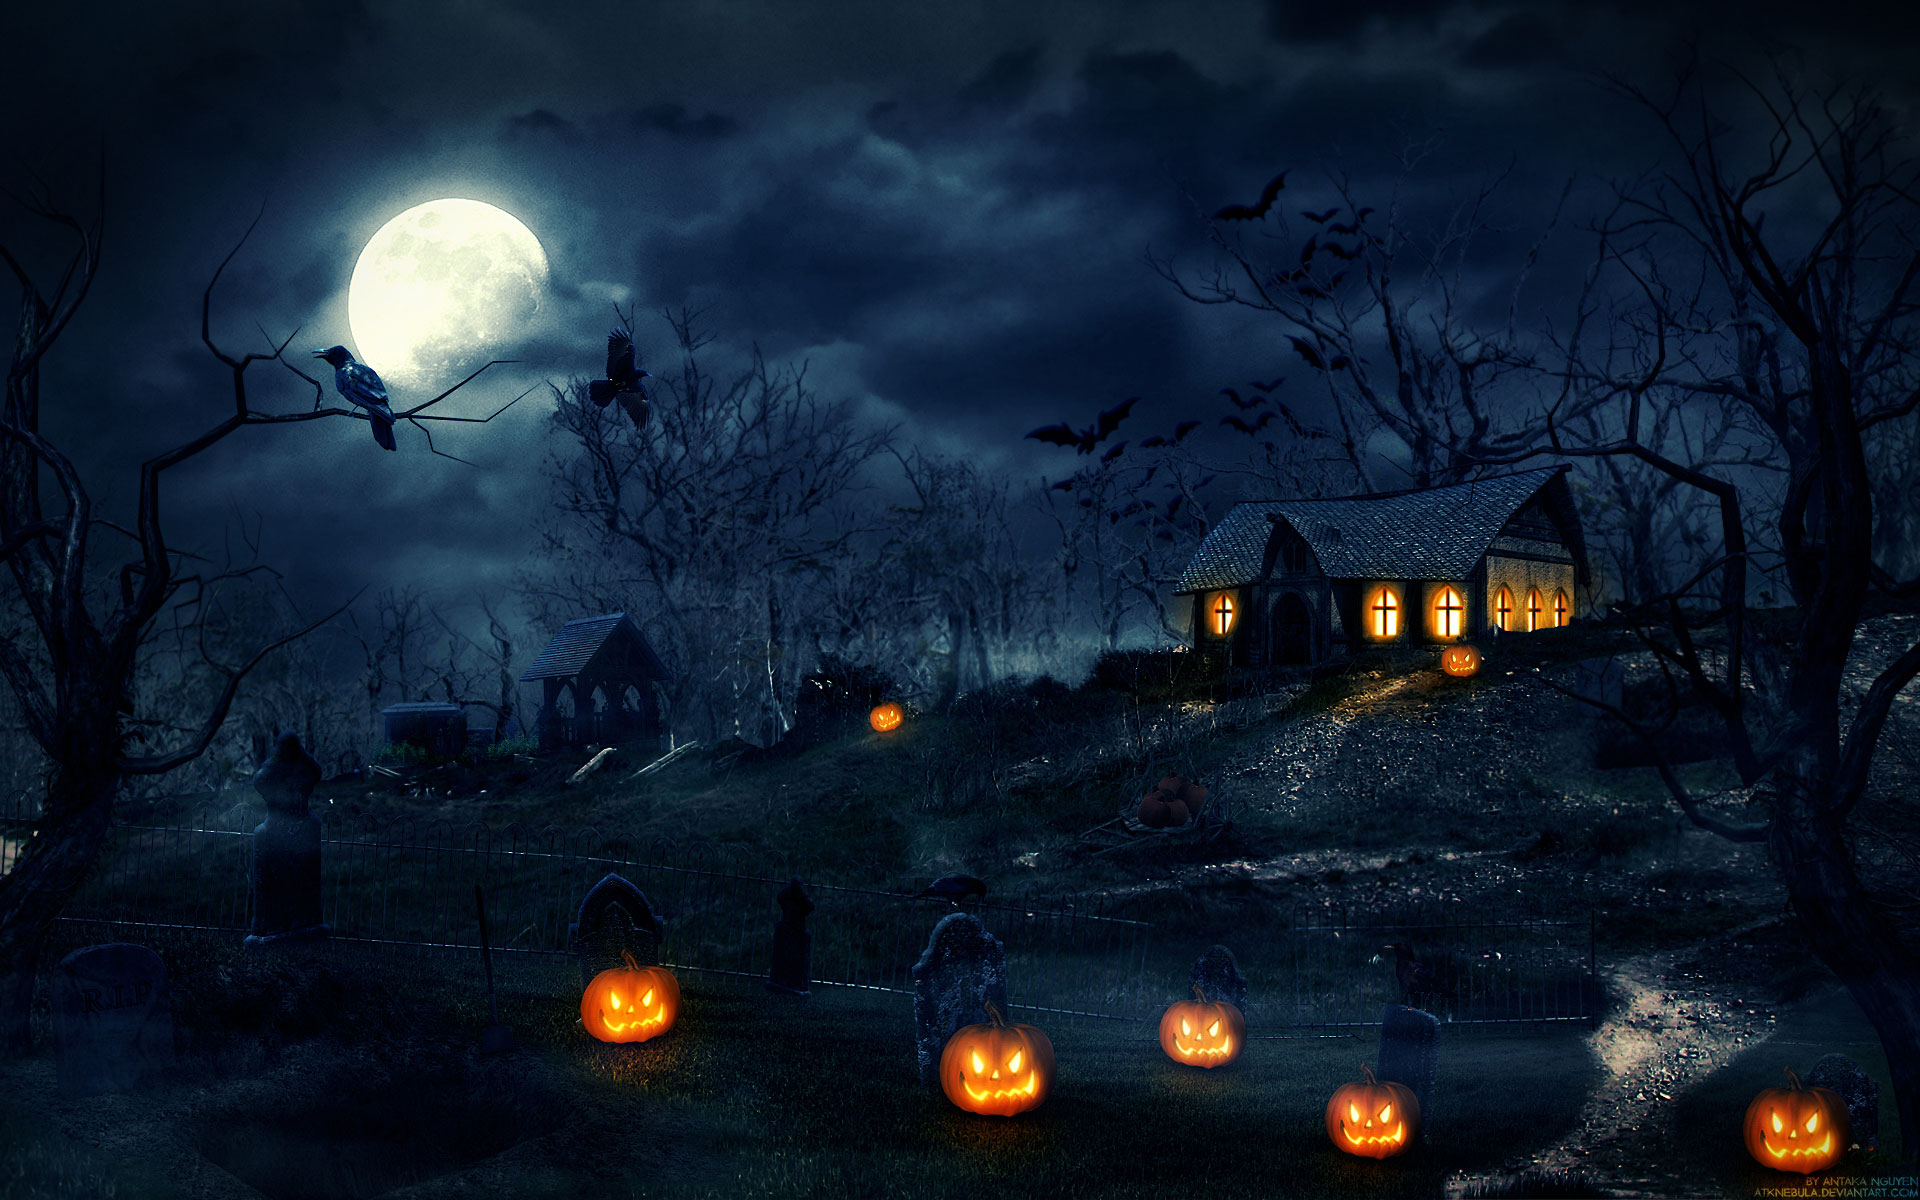 Top 10 HD Halloween 2014 Wallpapers for PC AxeeTech 1920x1200